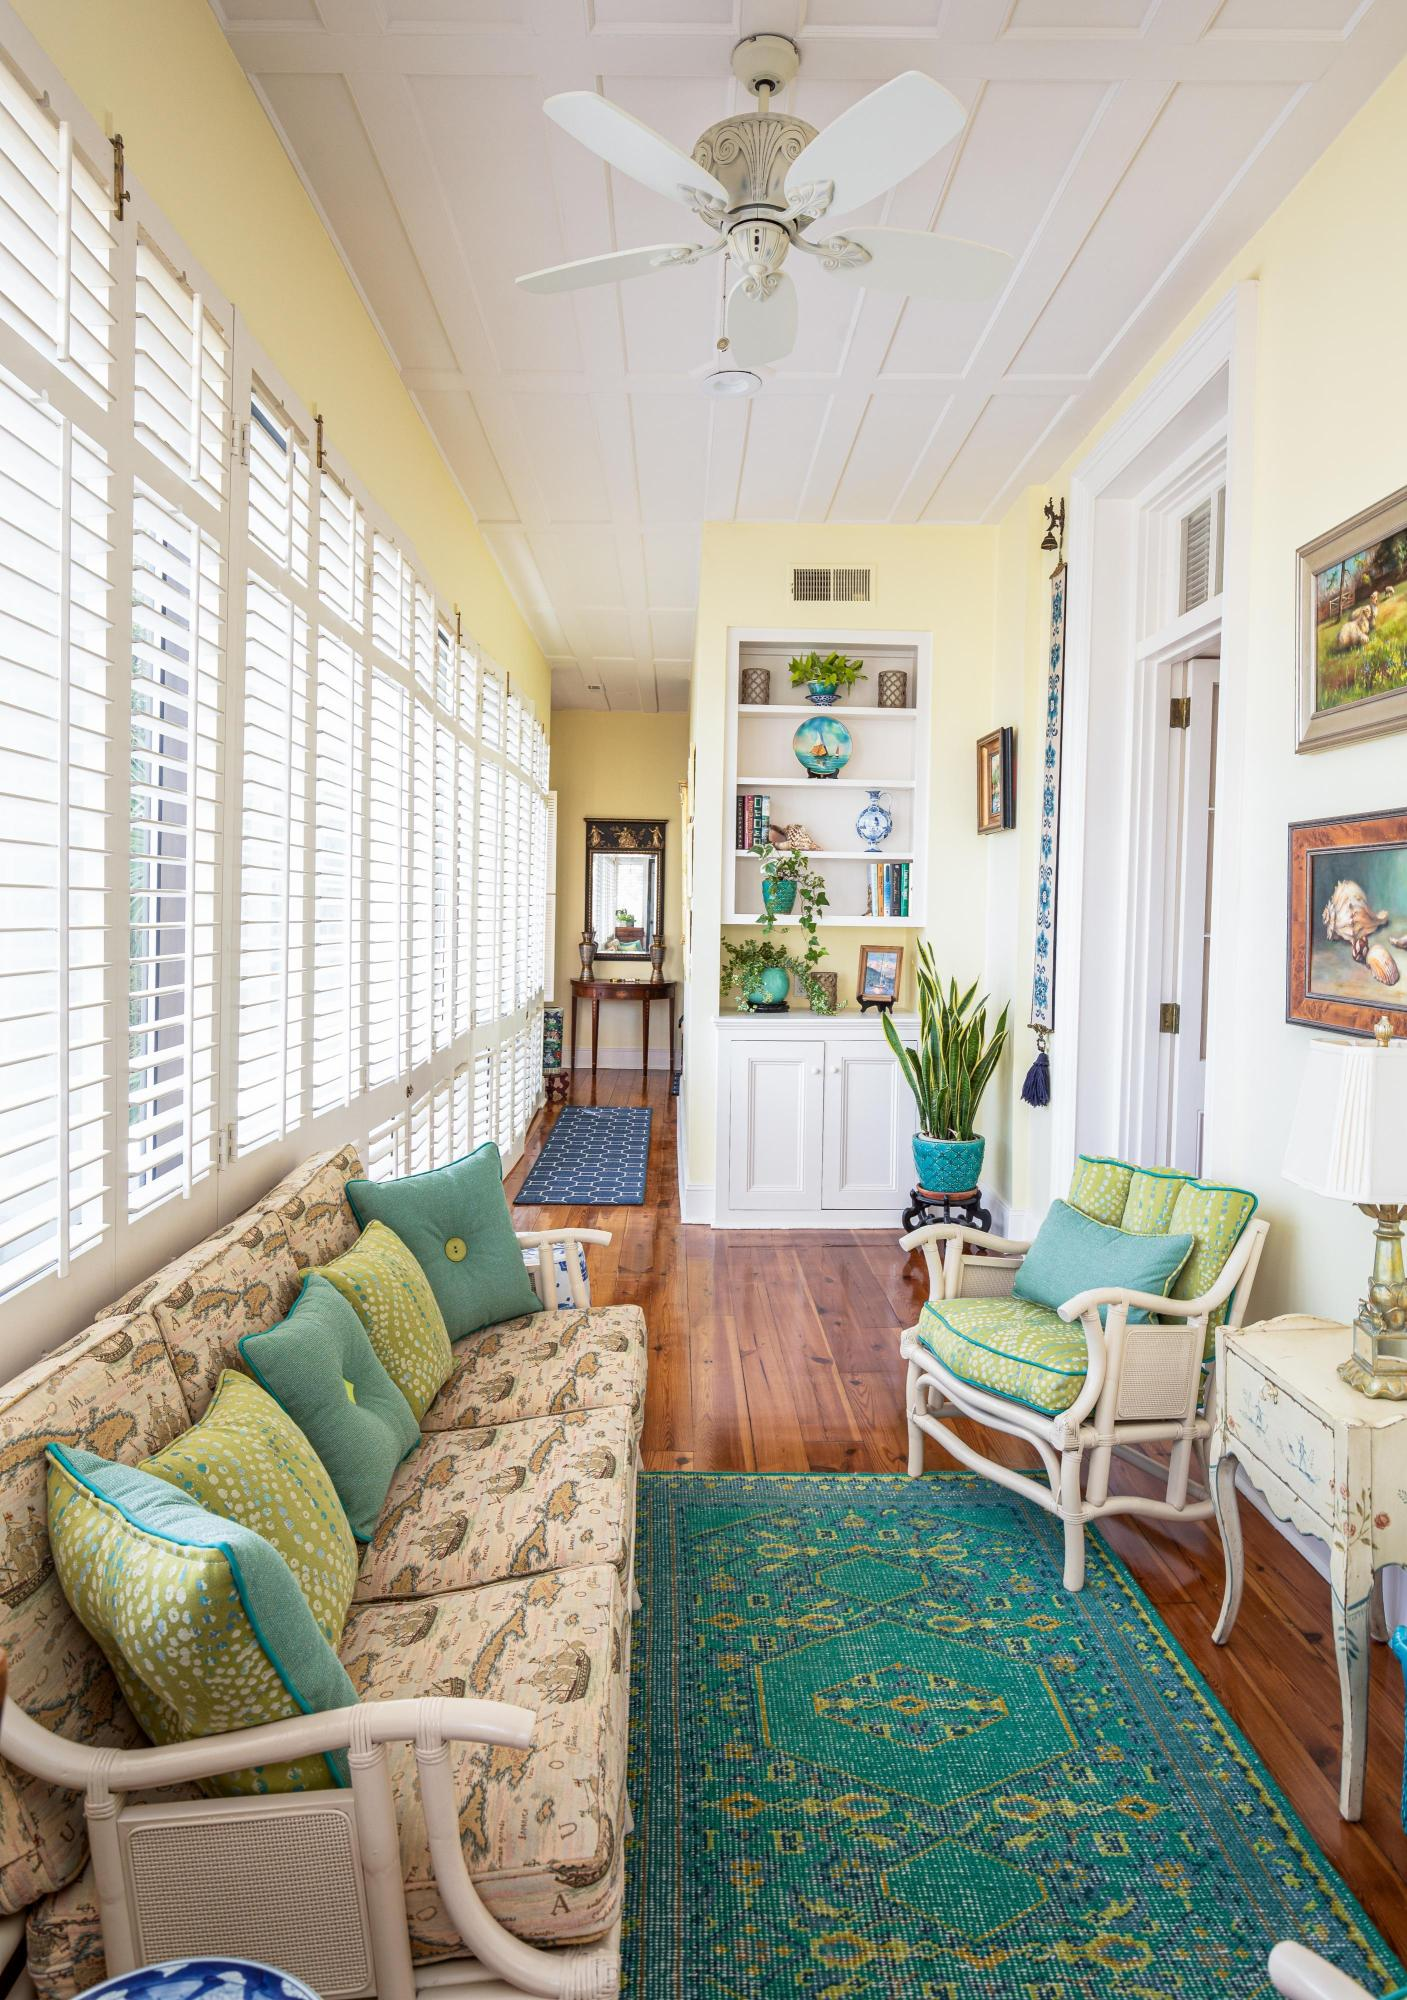 South of Broad Homes For Sale - 5 Legare, Charleston, SC - 20